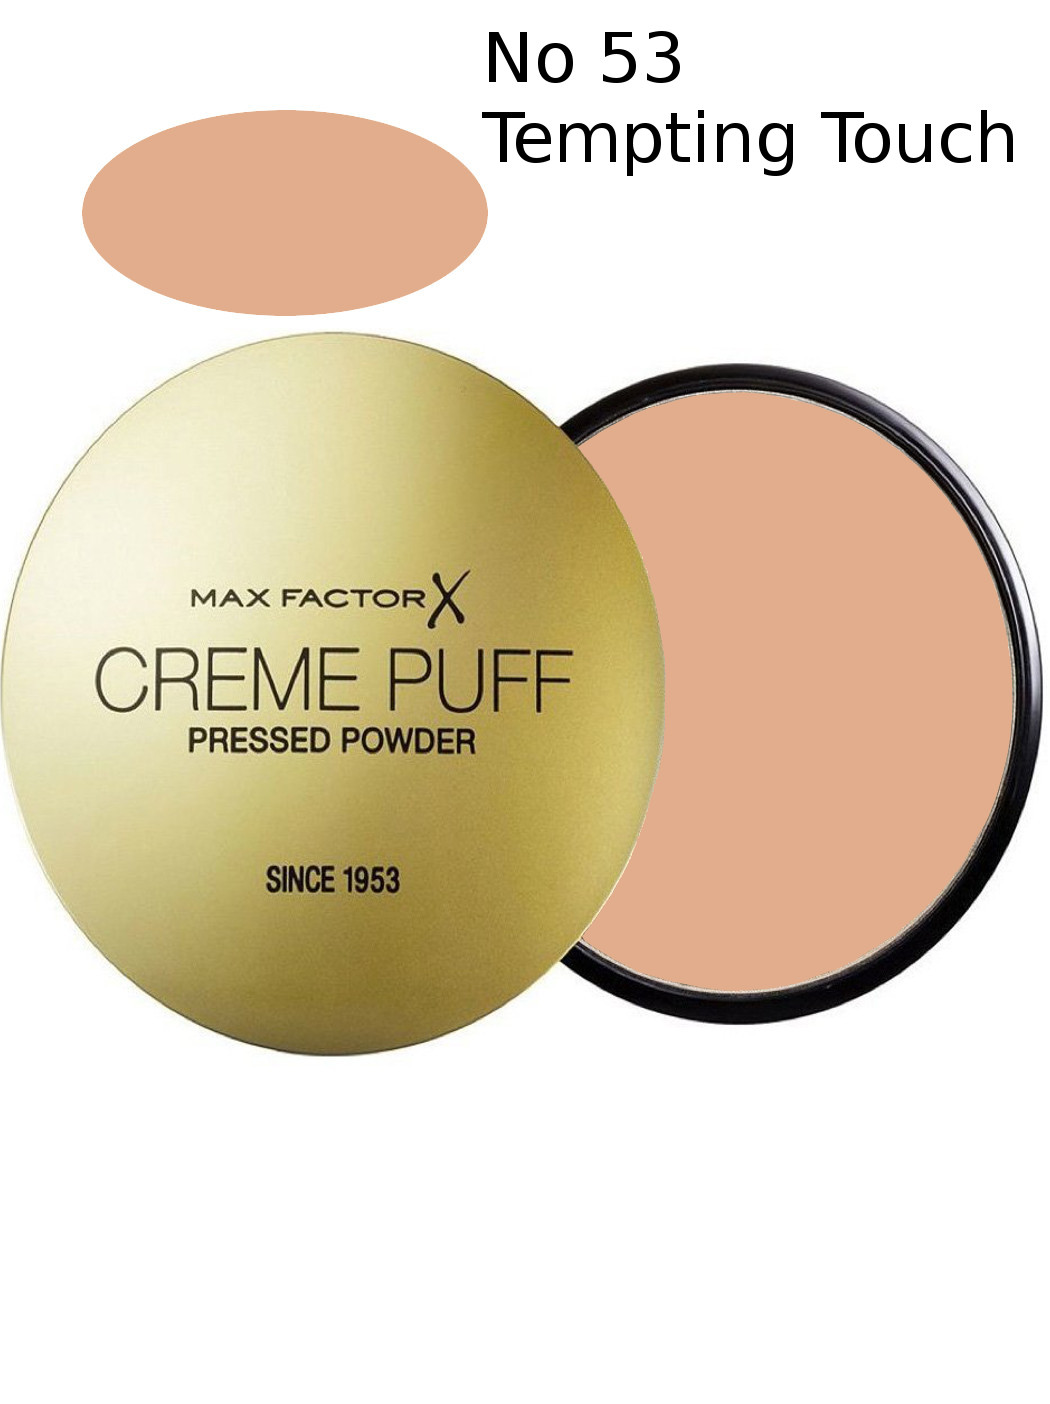 Max Factor Creme Puff Kőpúder(21g)-53Tempting Touch